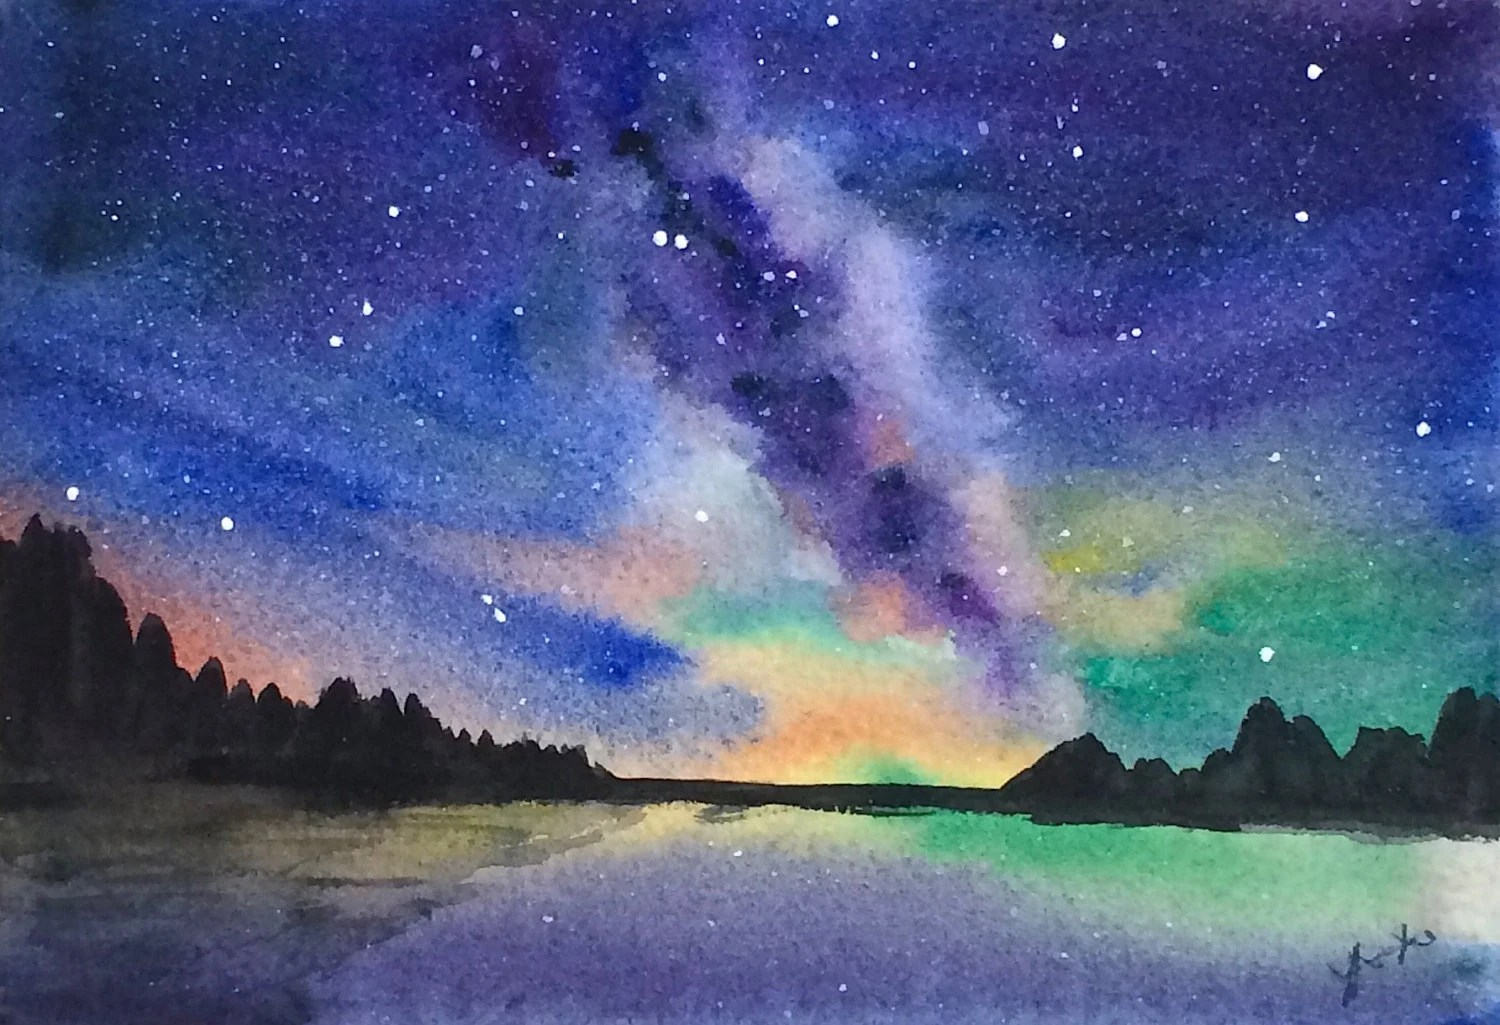 Falling In Love Hd Wallpapers Original Watercolor Landscape Painting 5x7 Milky Way Galaxy